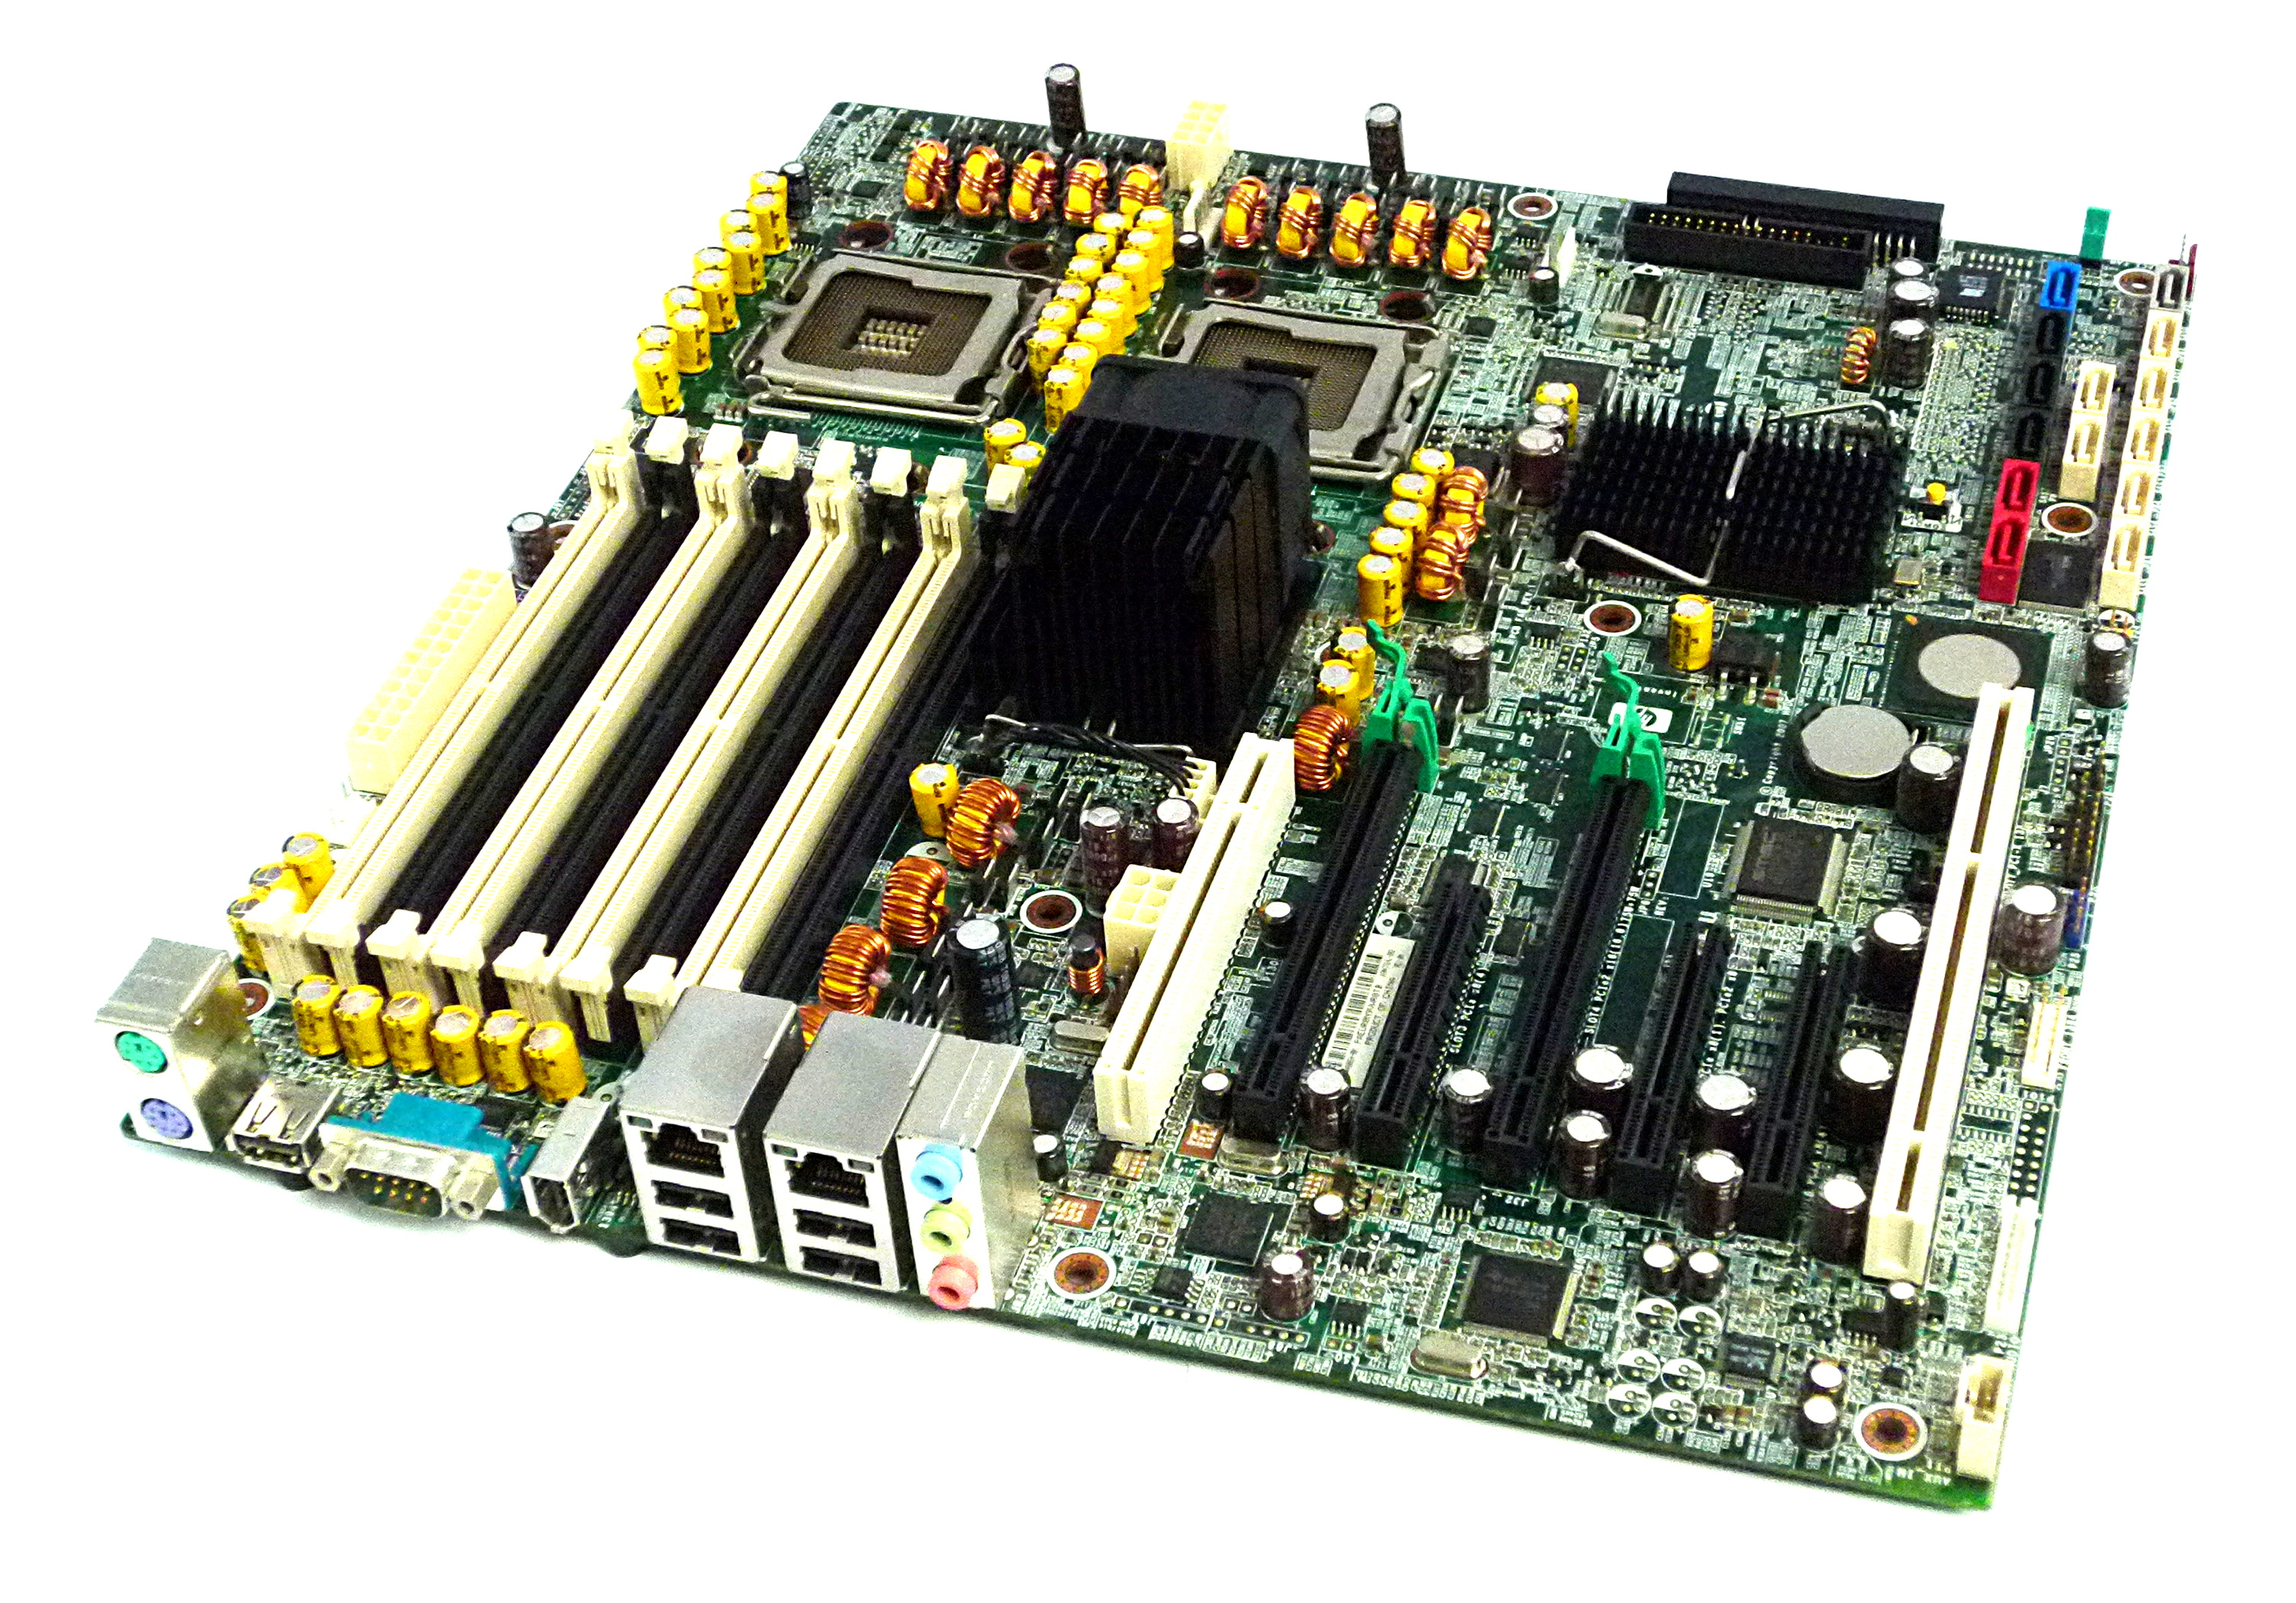 HP 480024-001 xw8600 Workstation Motherboard 439241-002